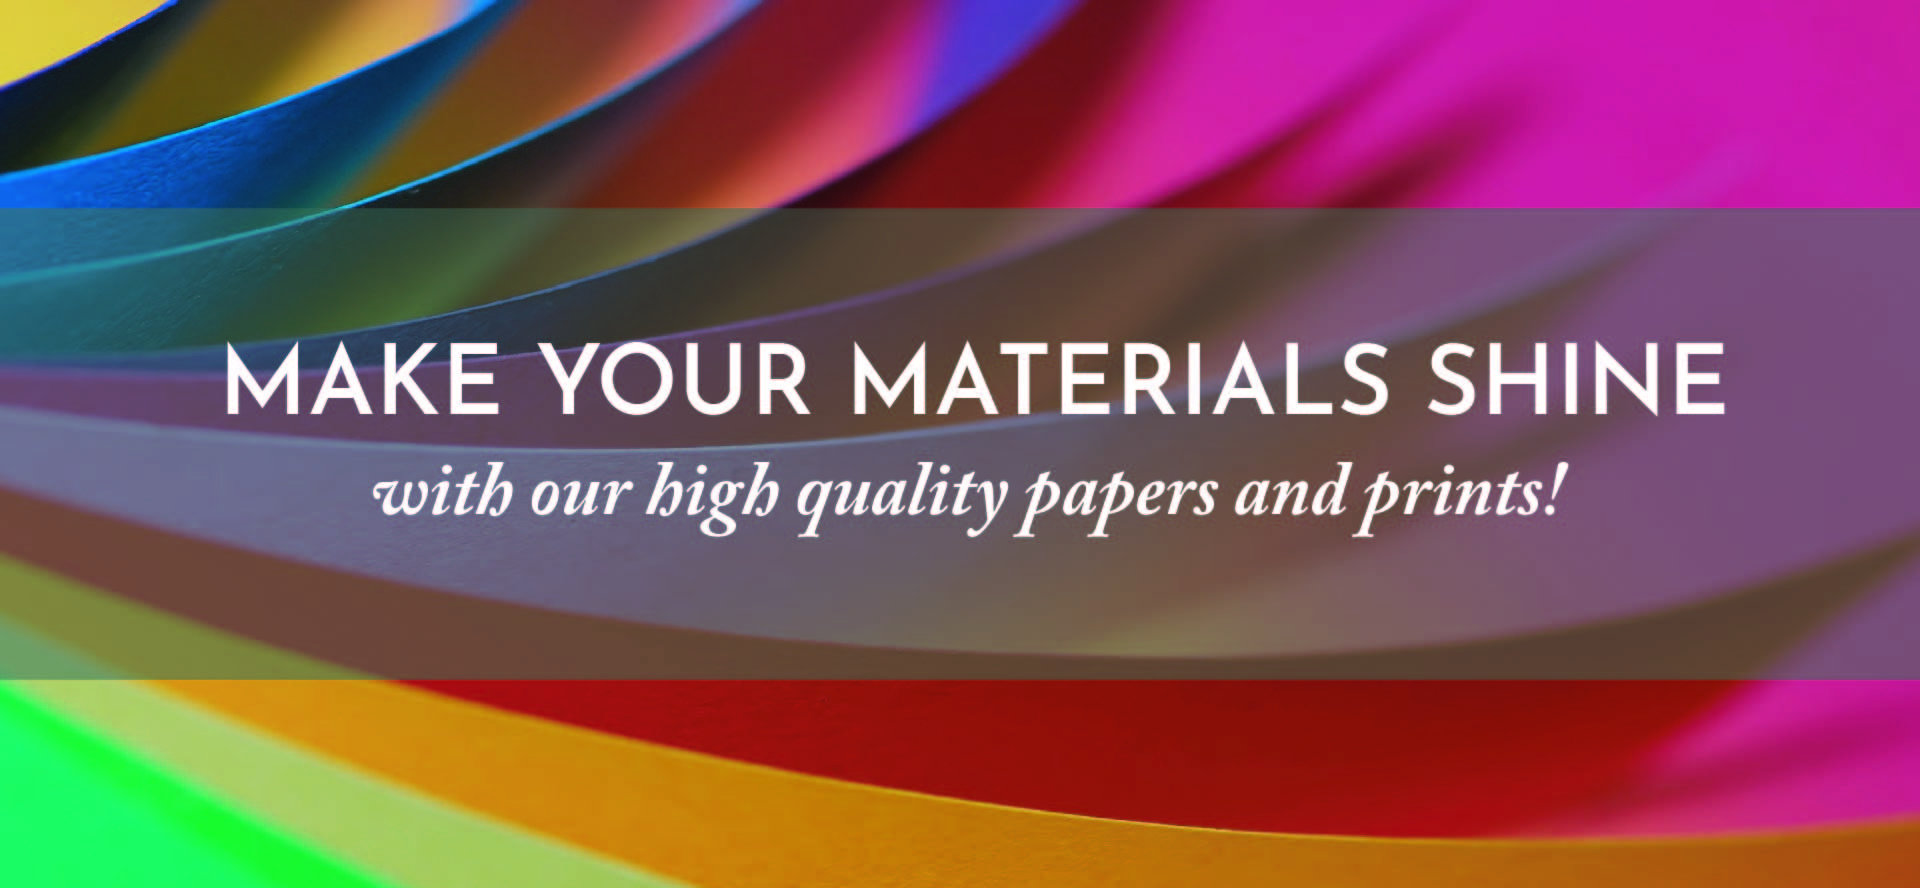 Make Your Materials Shine